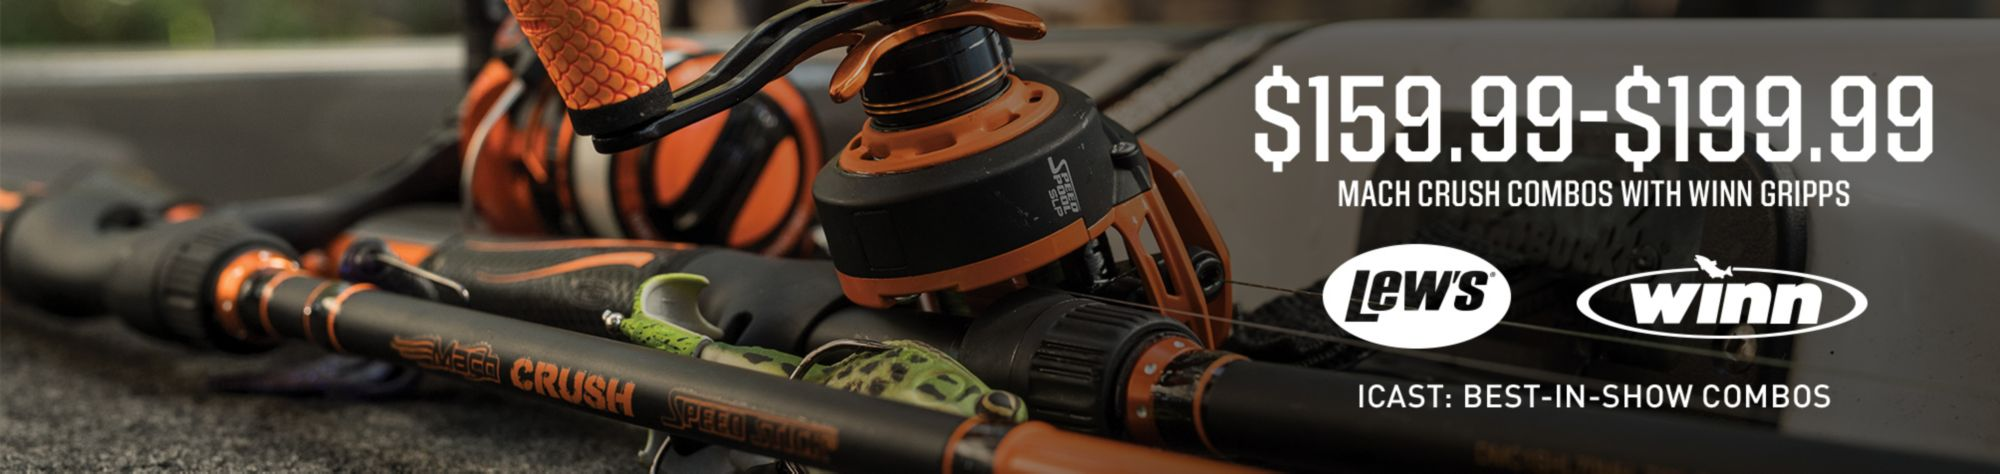 Fishing rods reels best price guarantee at dick 39 s for Craigslist fishing equipment